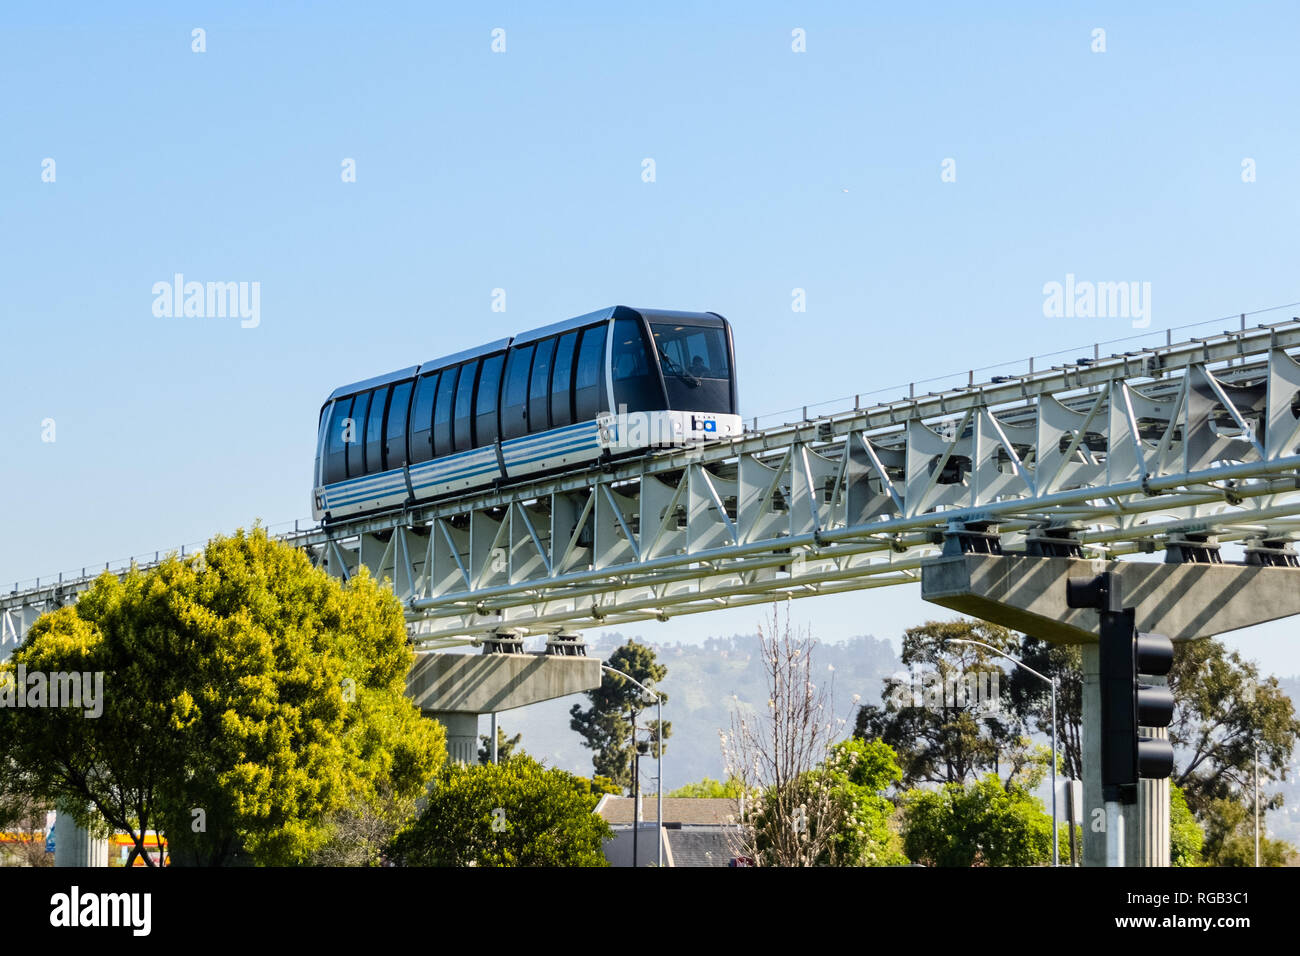 April 14, 2018 Oakland / CA / USA - BART train transporting people to the airport - Stock Image